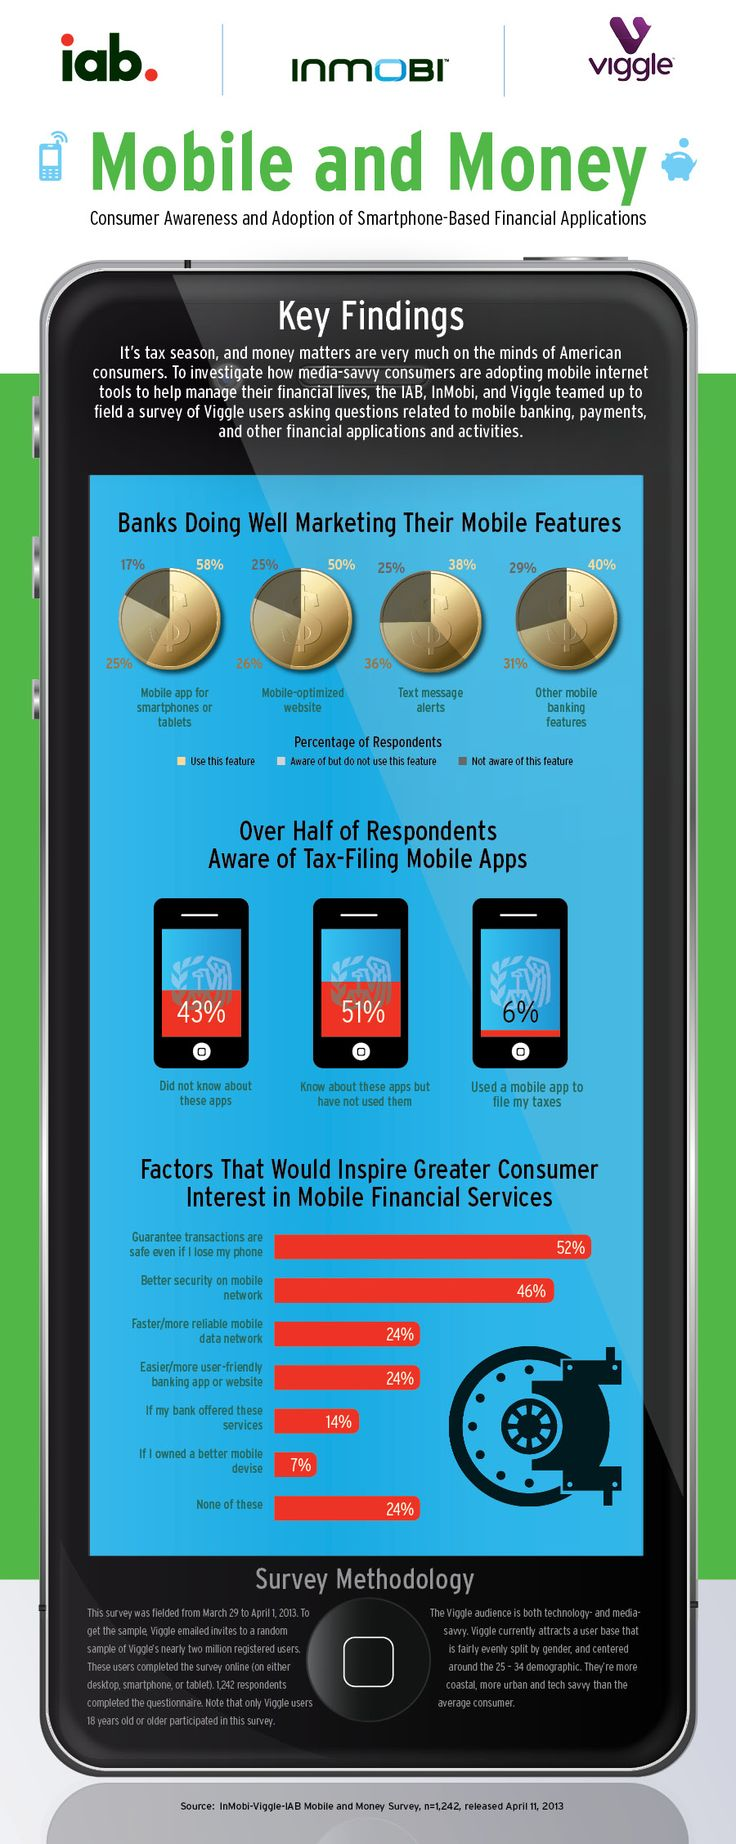 Mobile and Money: How Mobile Users Leverage Devices to Manage Finances